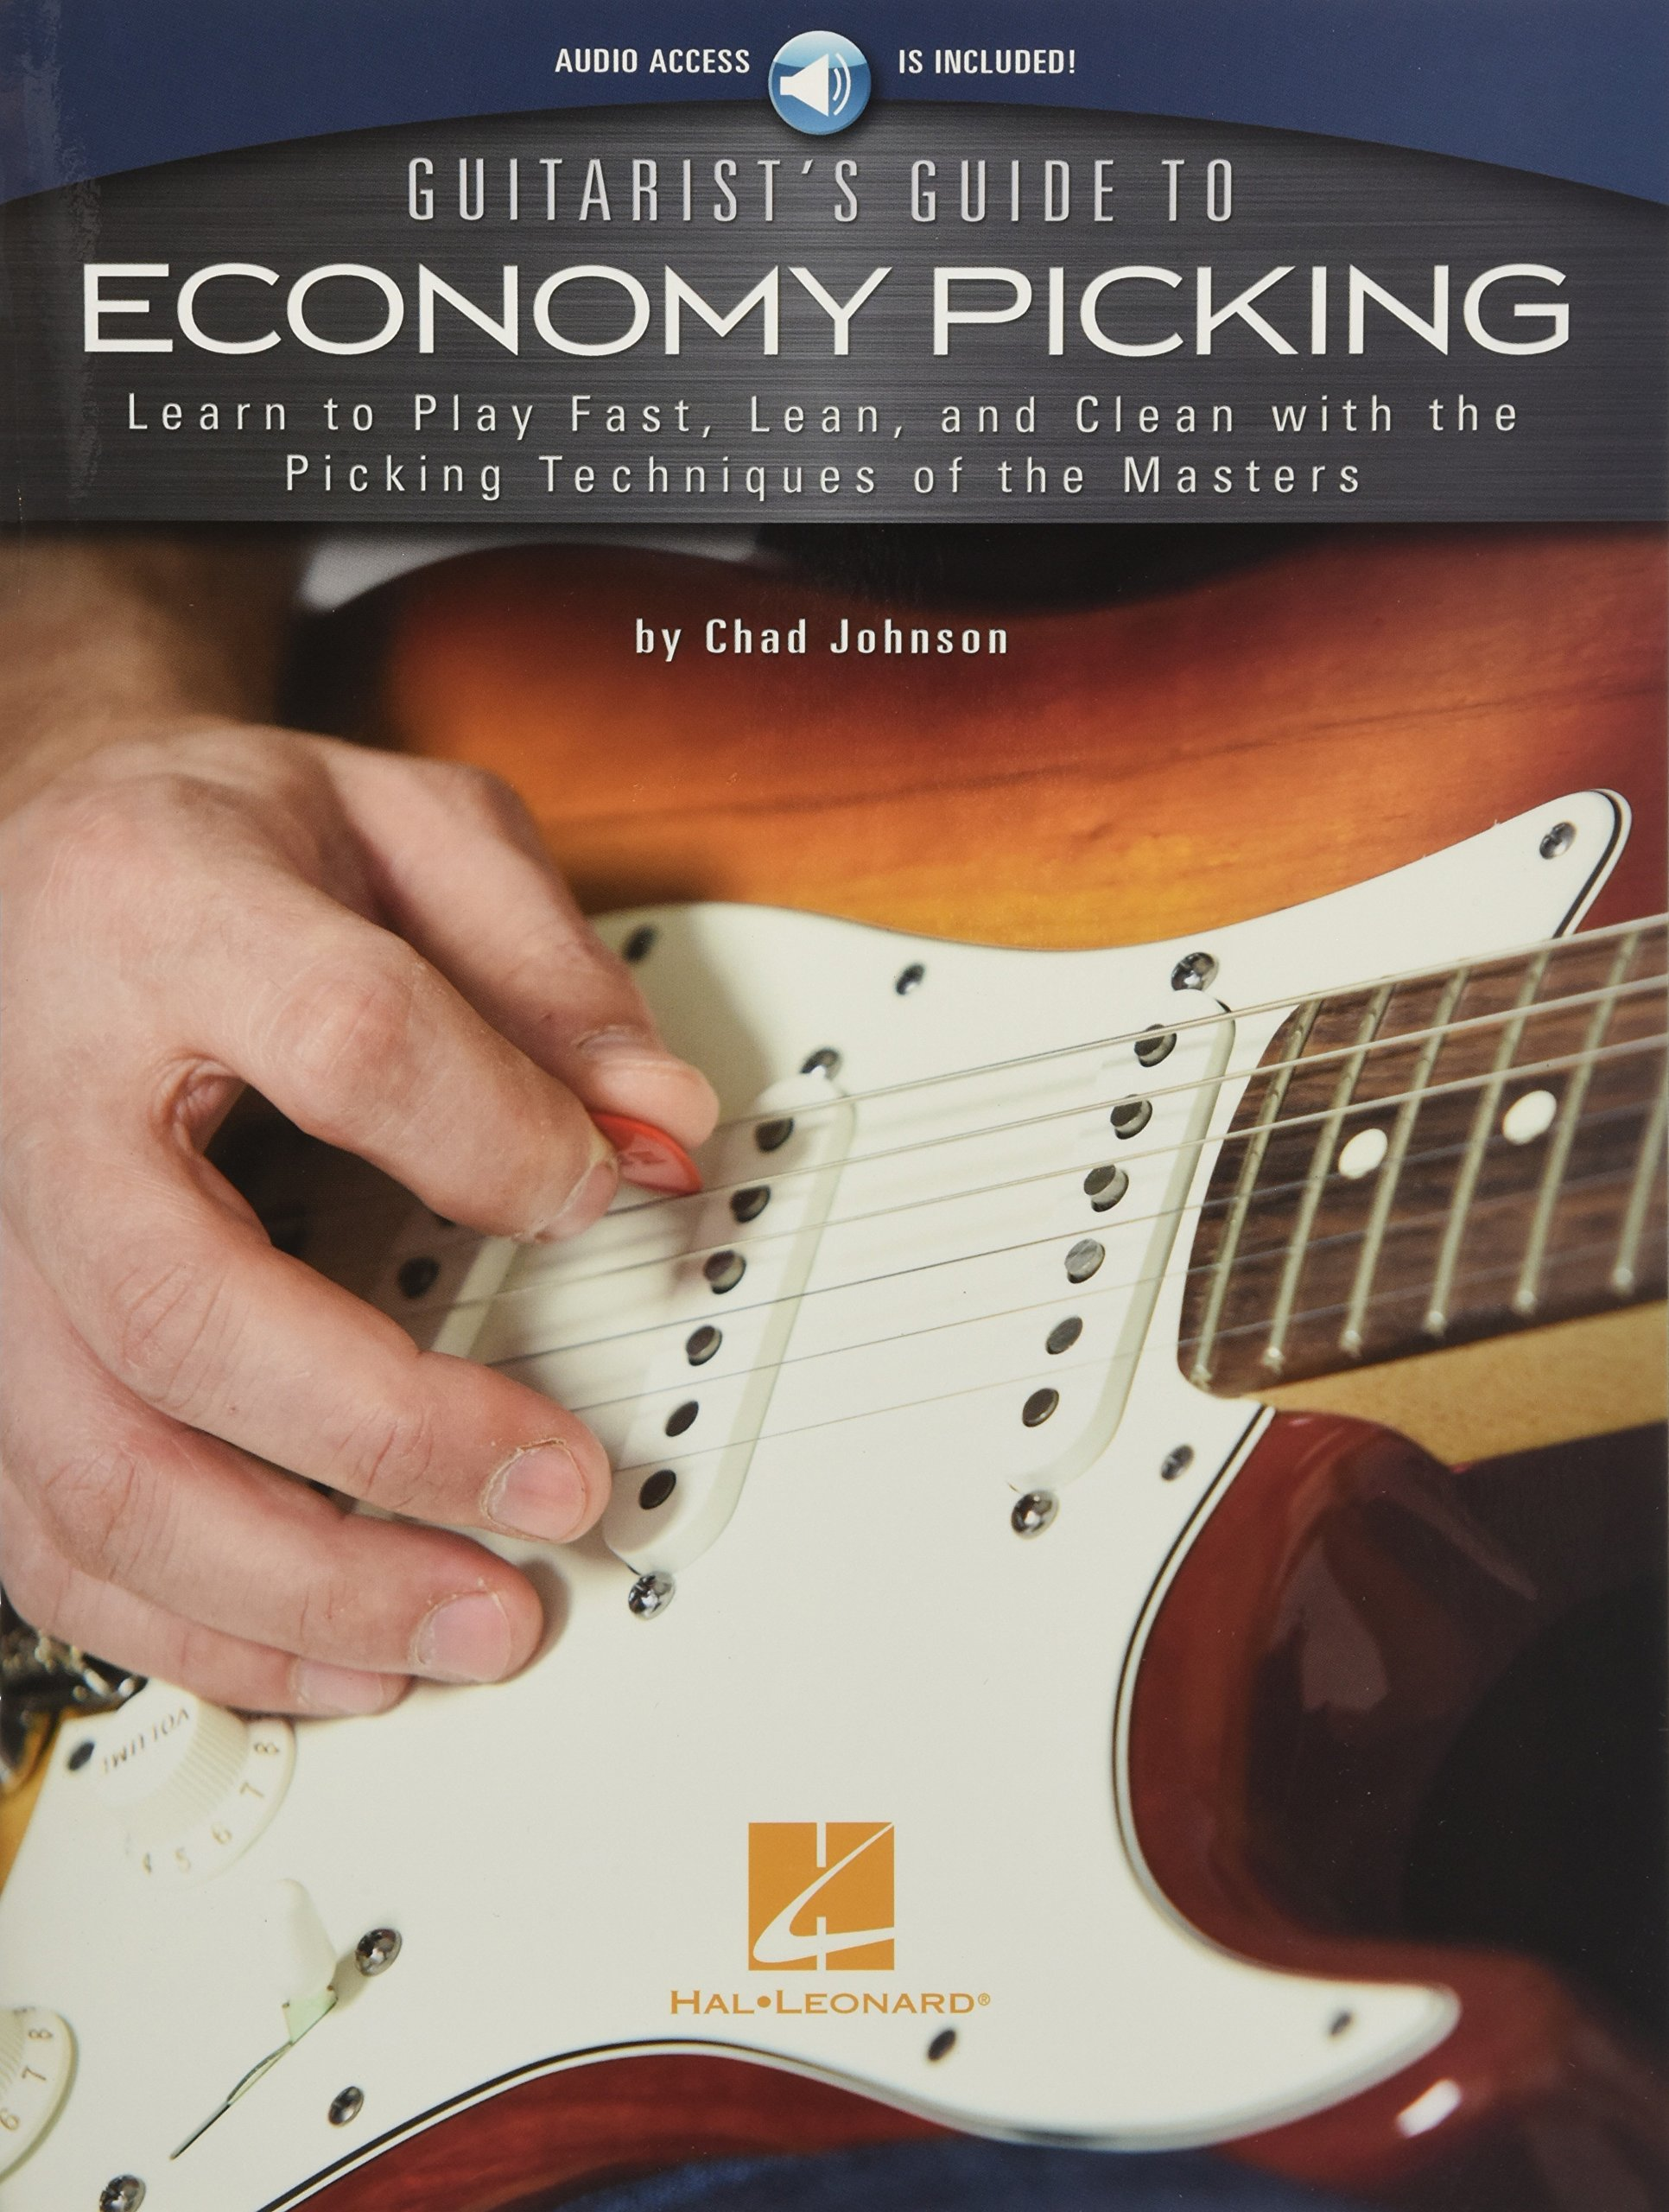 Download Guitarist's Guide to Economy Picking: Learn to Play Fast, Lean and Clean with the Picking Techniques of the Masters ebook